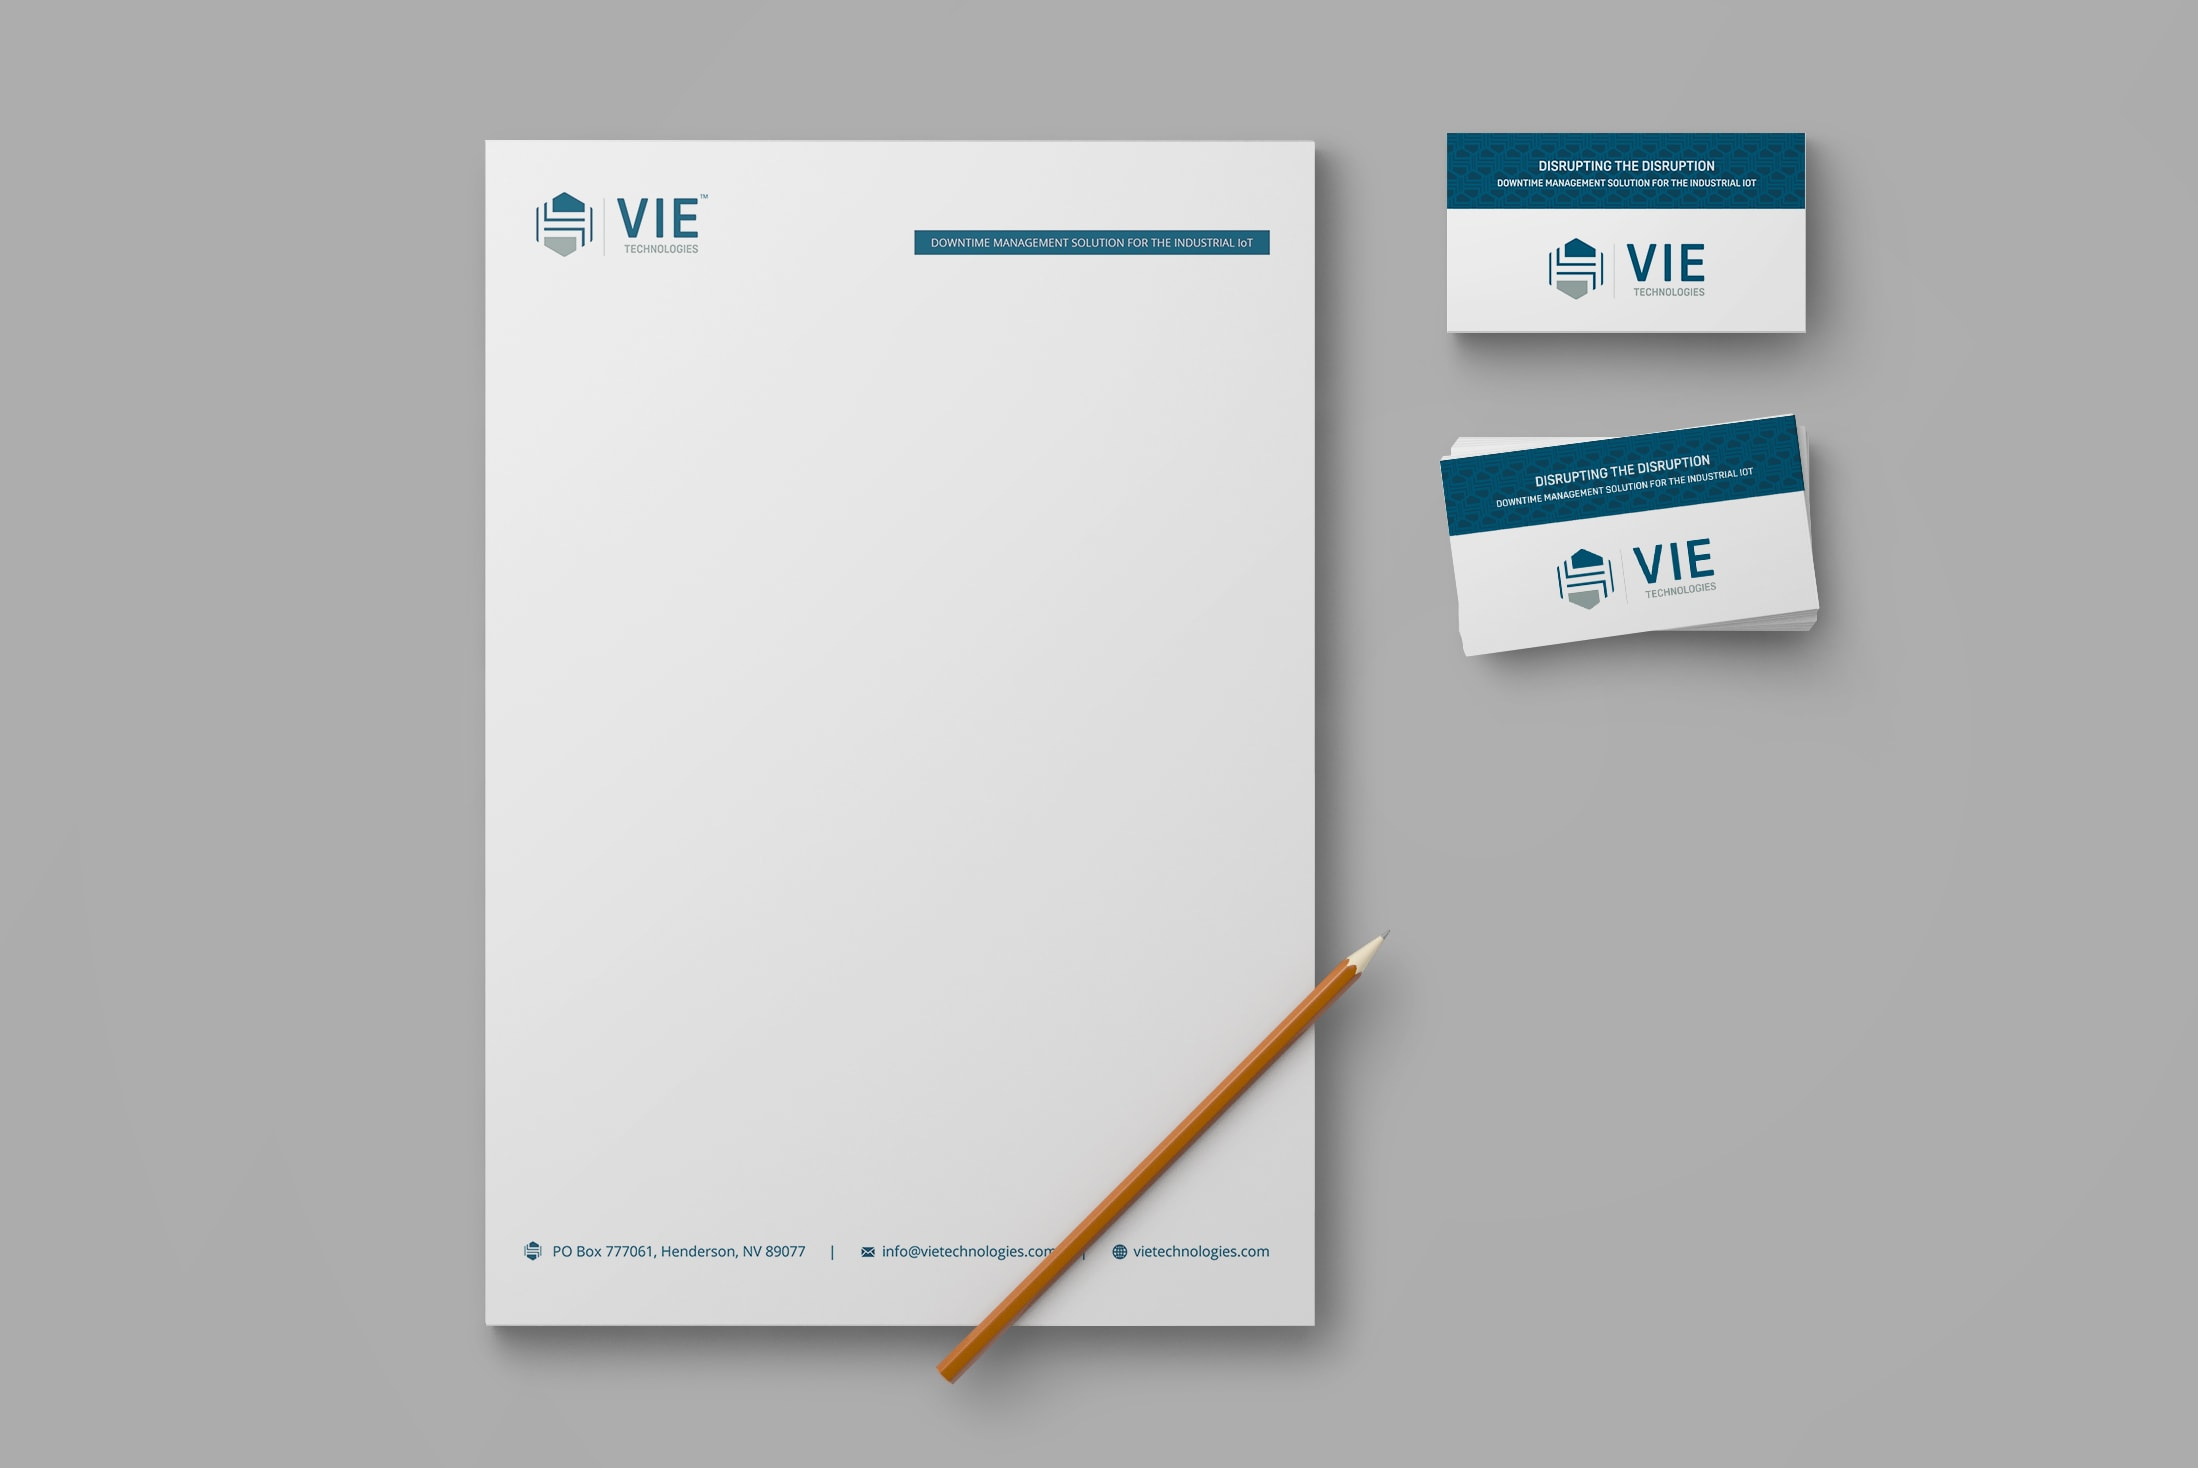 VIE-stationary